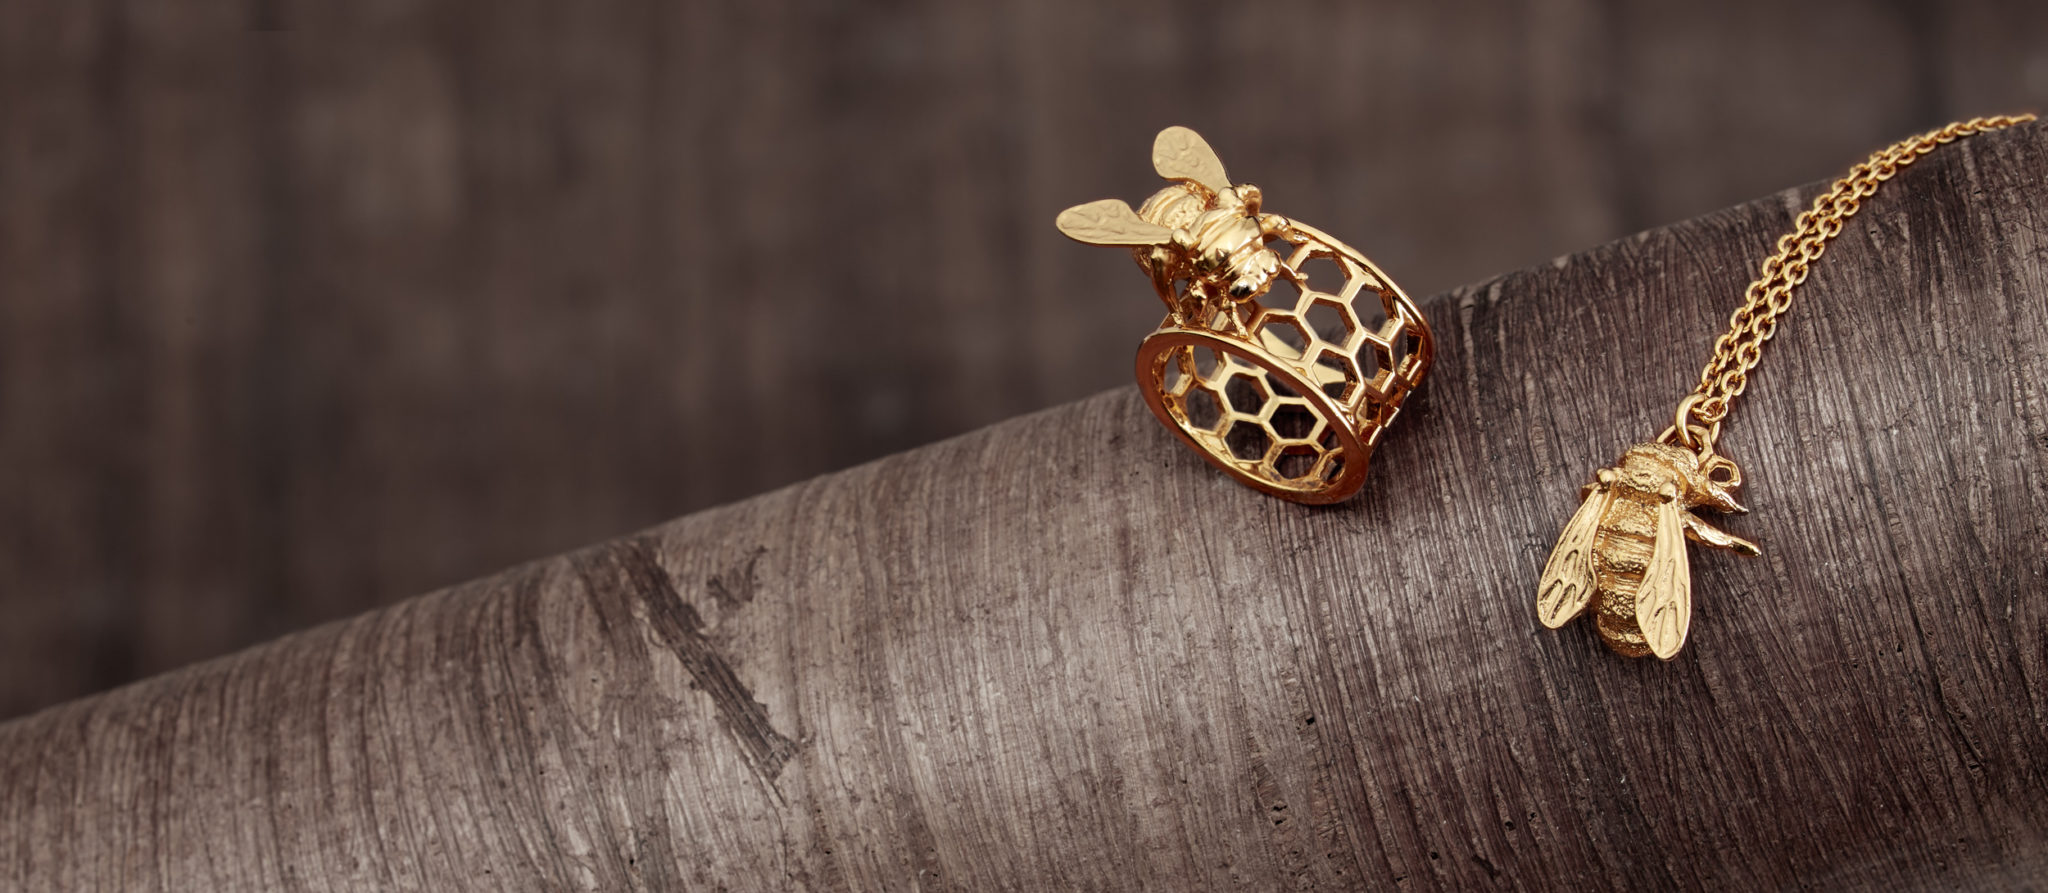 gold bee ring and gold bee necklace on wood branch